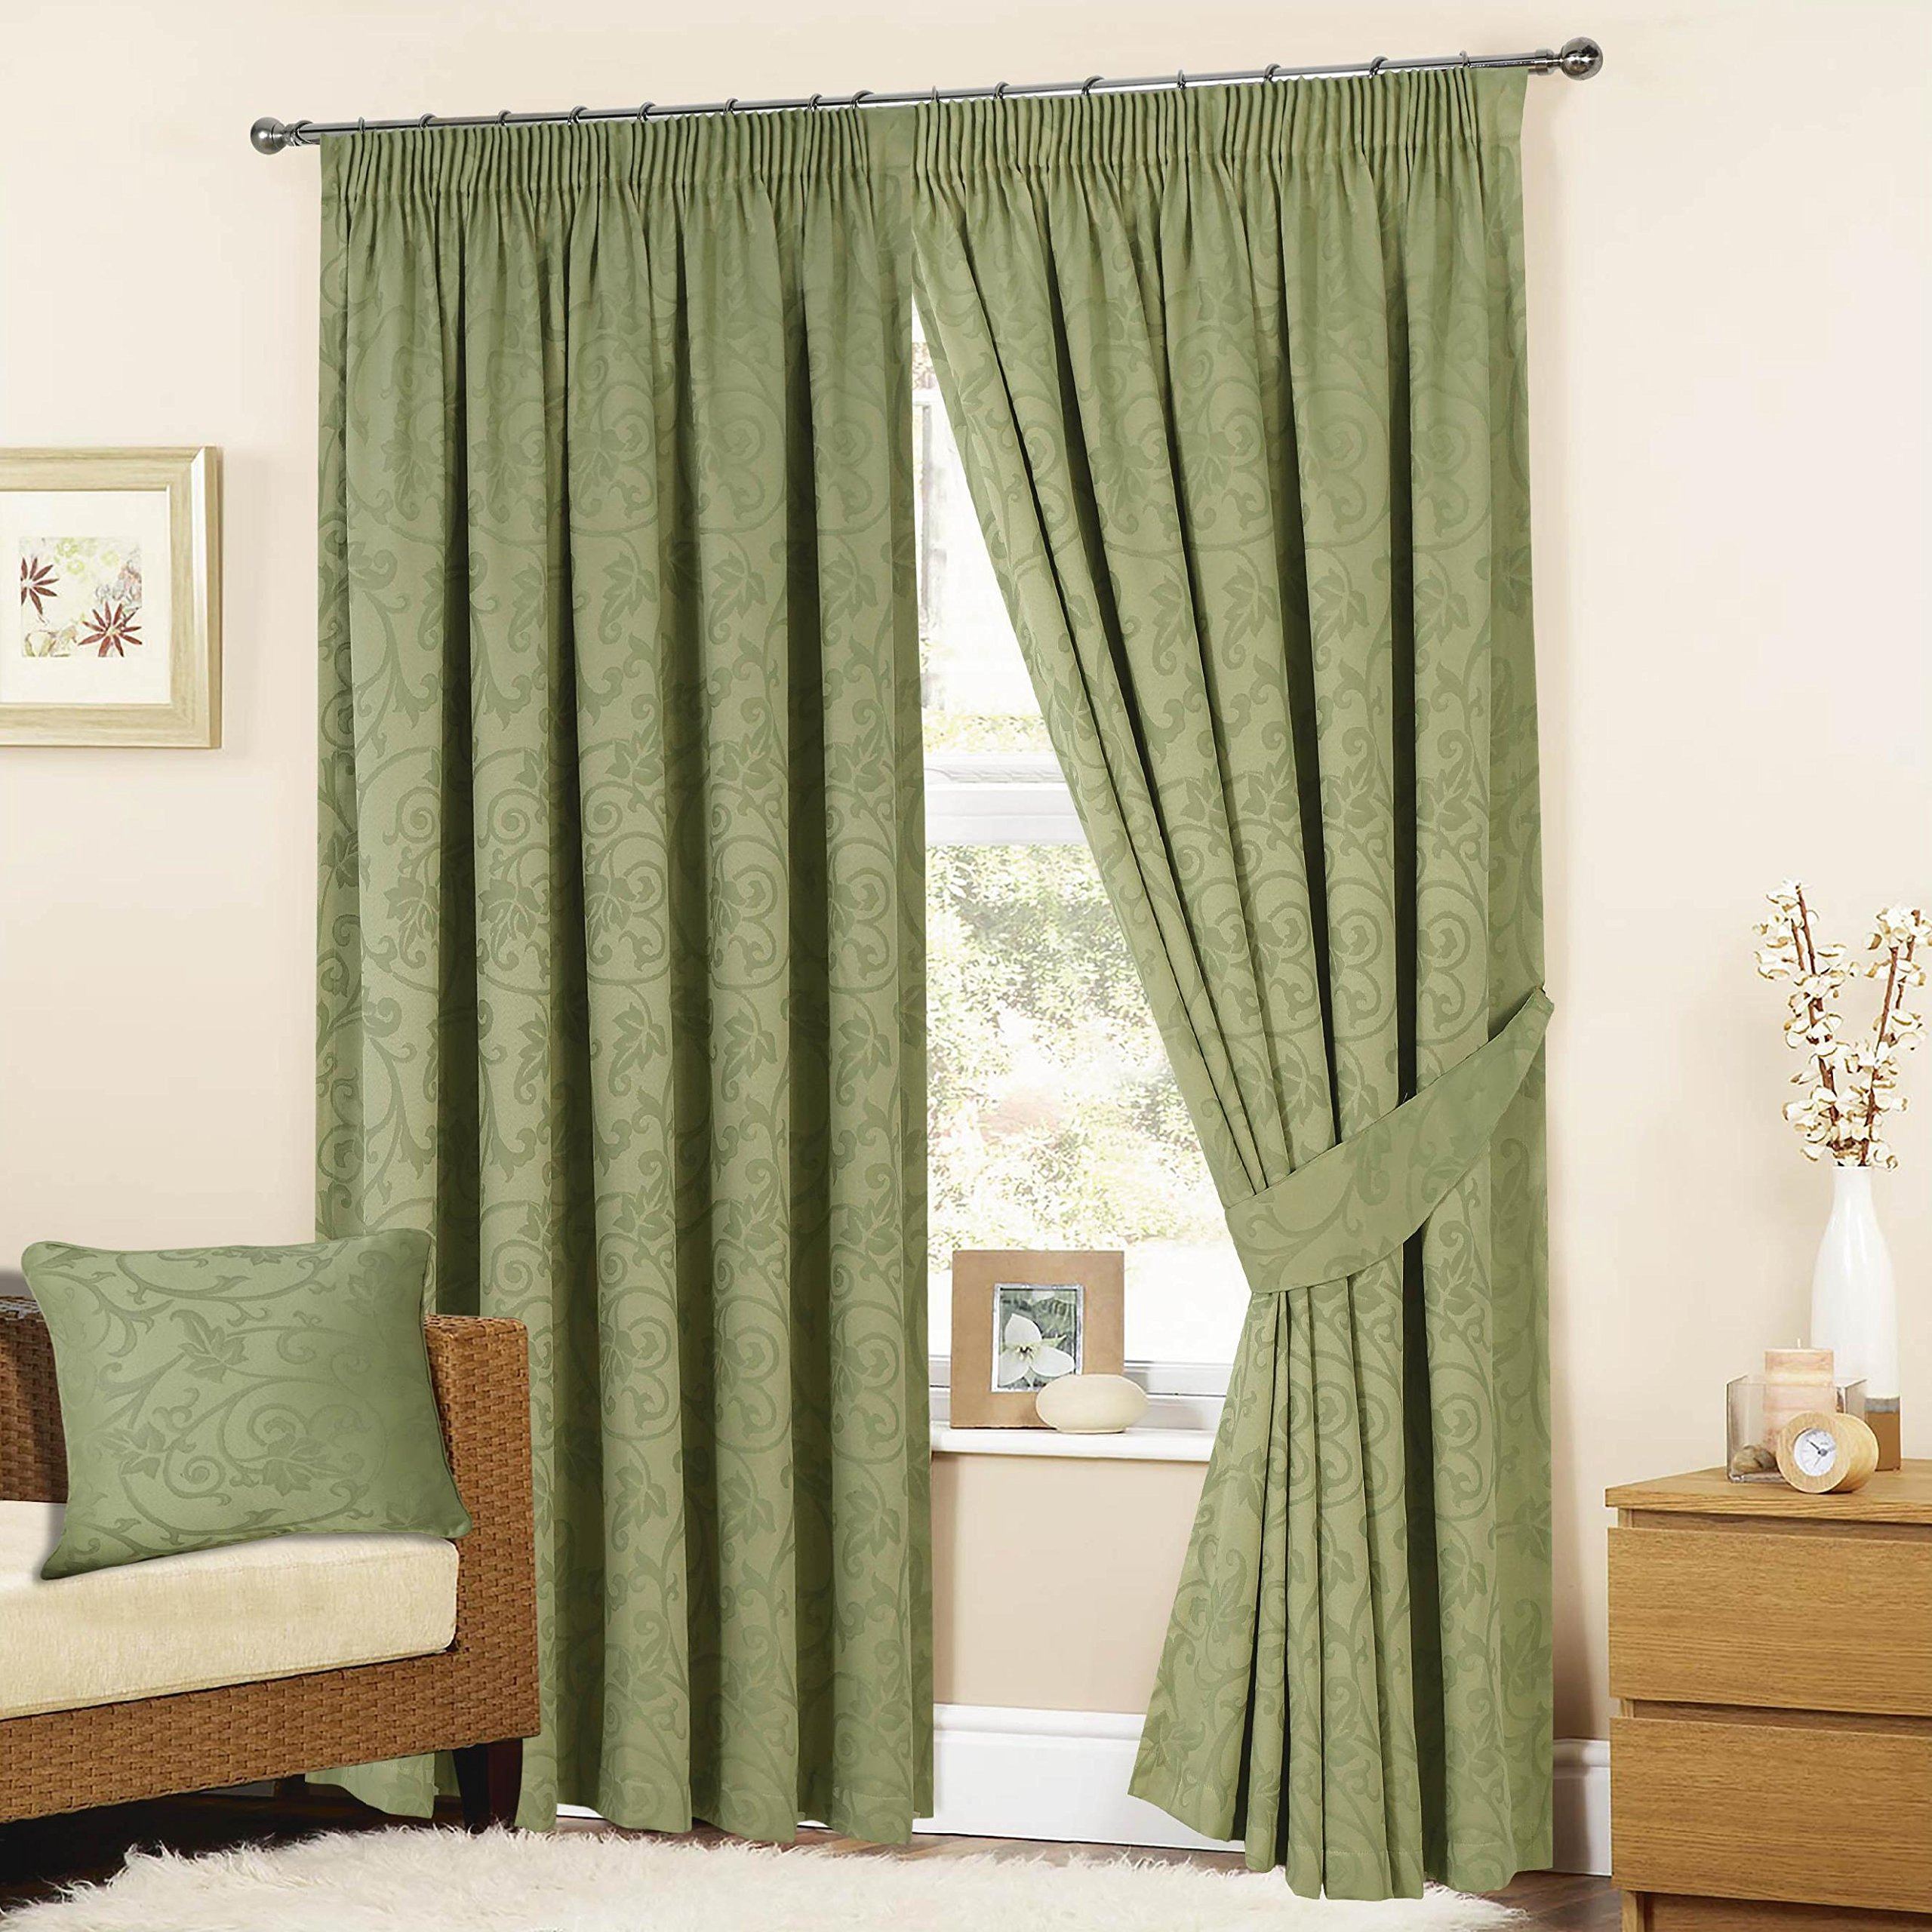 K LIVING Turin Tape Curtains In Sage Green Various Sizes Available 65 X 90